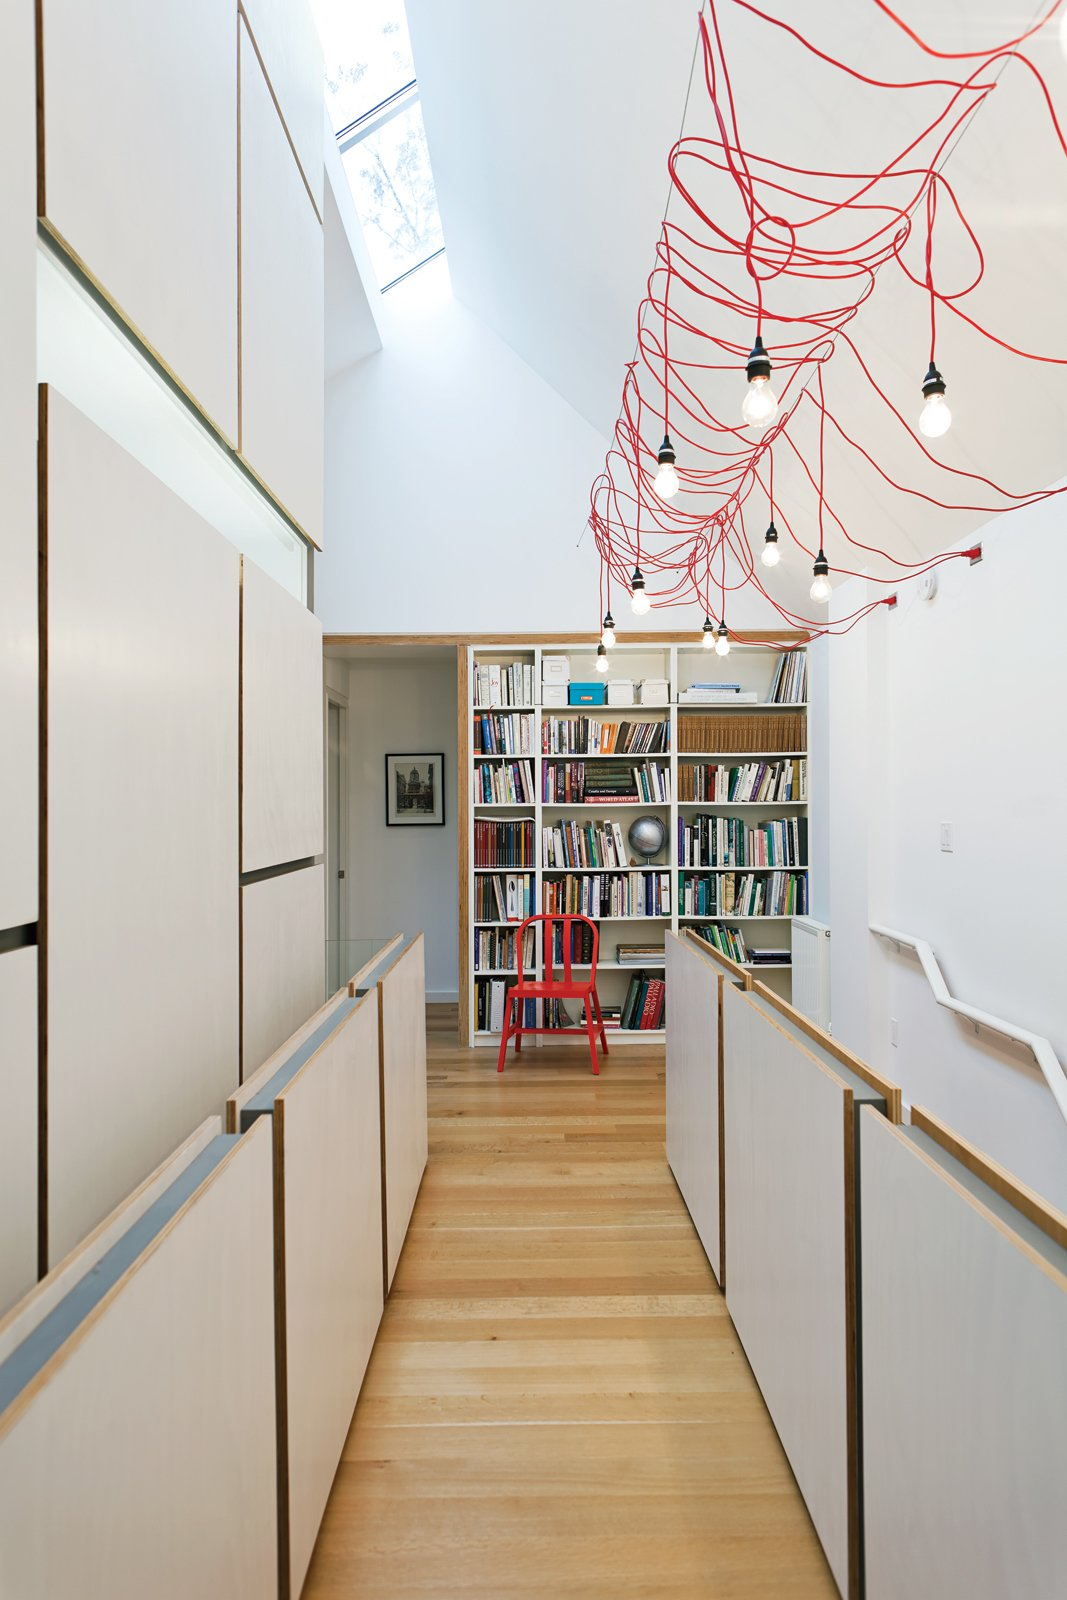 A dim Toronto Tudor gets an airy new look. The home's second-story hallway, which serves as an open office and library, was suffering from a severe lack of light. Lifting up one side of the old pitched roof made room for a linear skylight, which faces south to allow in as many rays as possible, and the modification transformed the top floor into a loftlike double-height space. Inexpensive detailing then added texture and scale: Simple plywood panels attached to cold-rolled-steel frames serve as guards along the stairs. Tagged: Hallway and Light Hardwood Floor.  Top Renovation Tips from the Pages of Dwell by Kelsey Keith from Toronto's 10 Top Homes